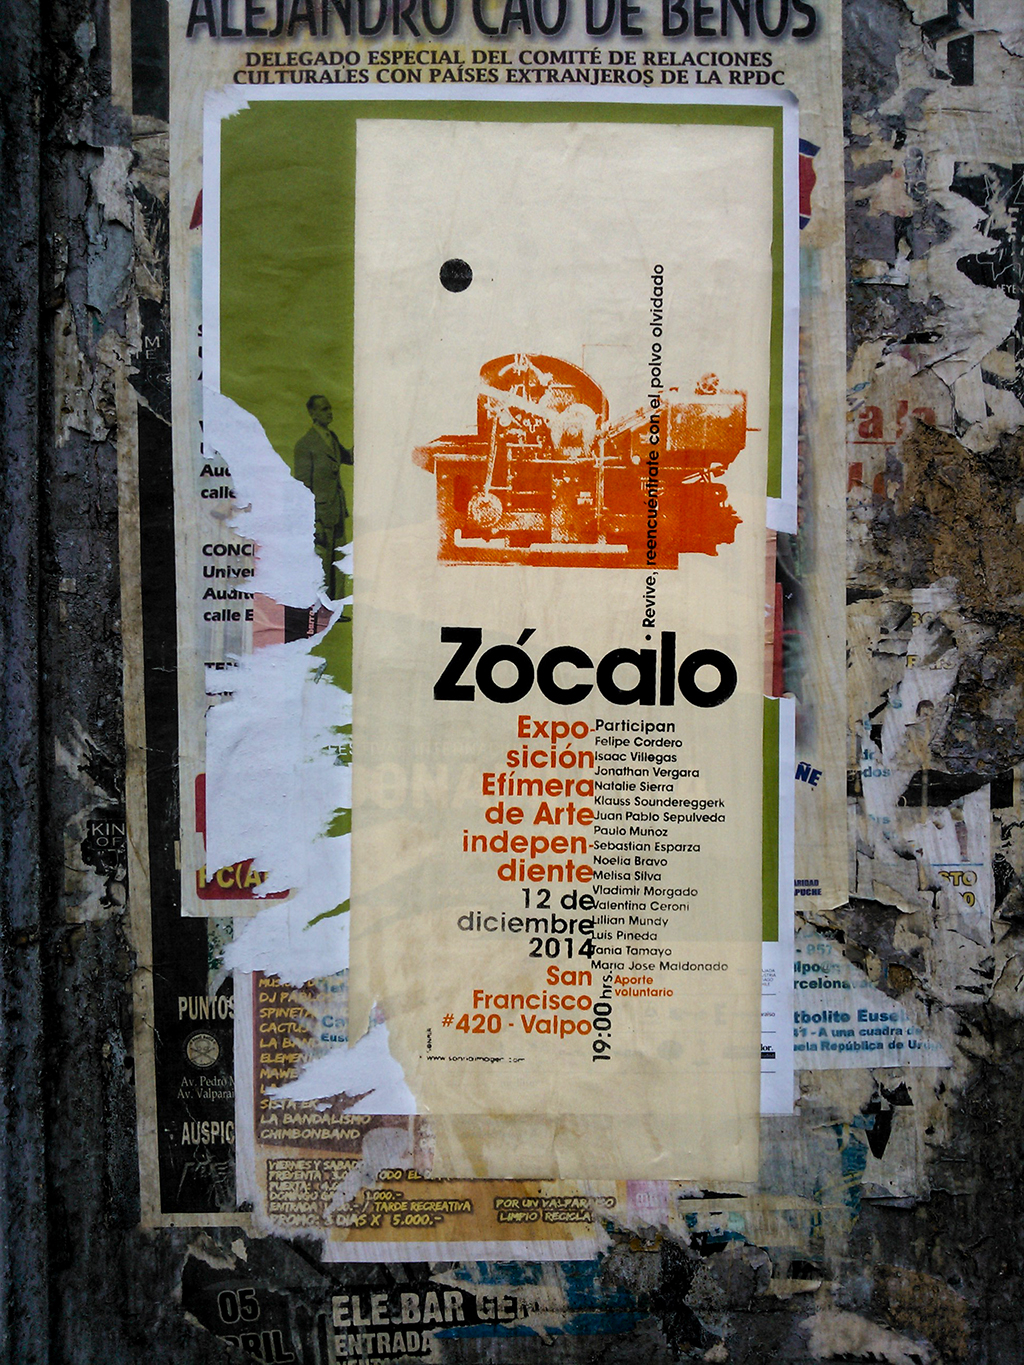 zocalo_pared_02